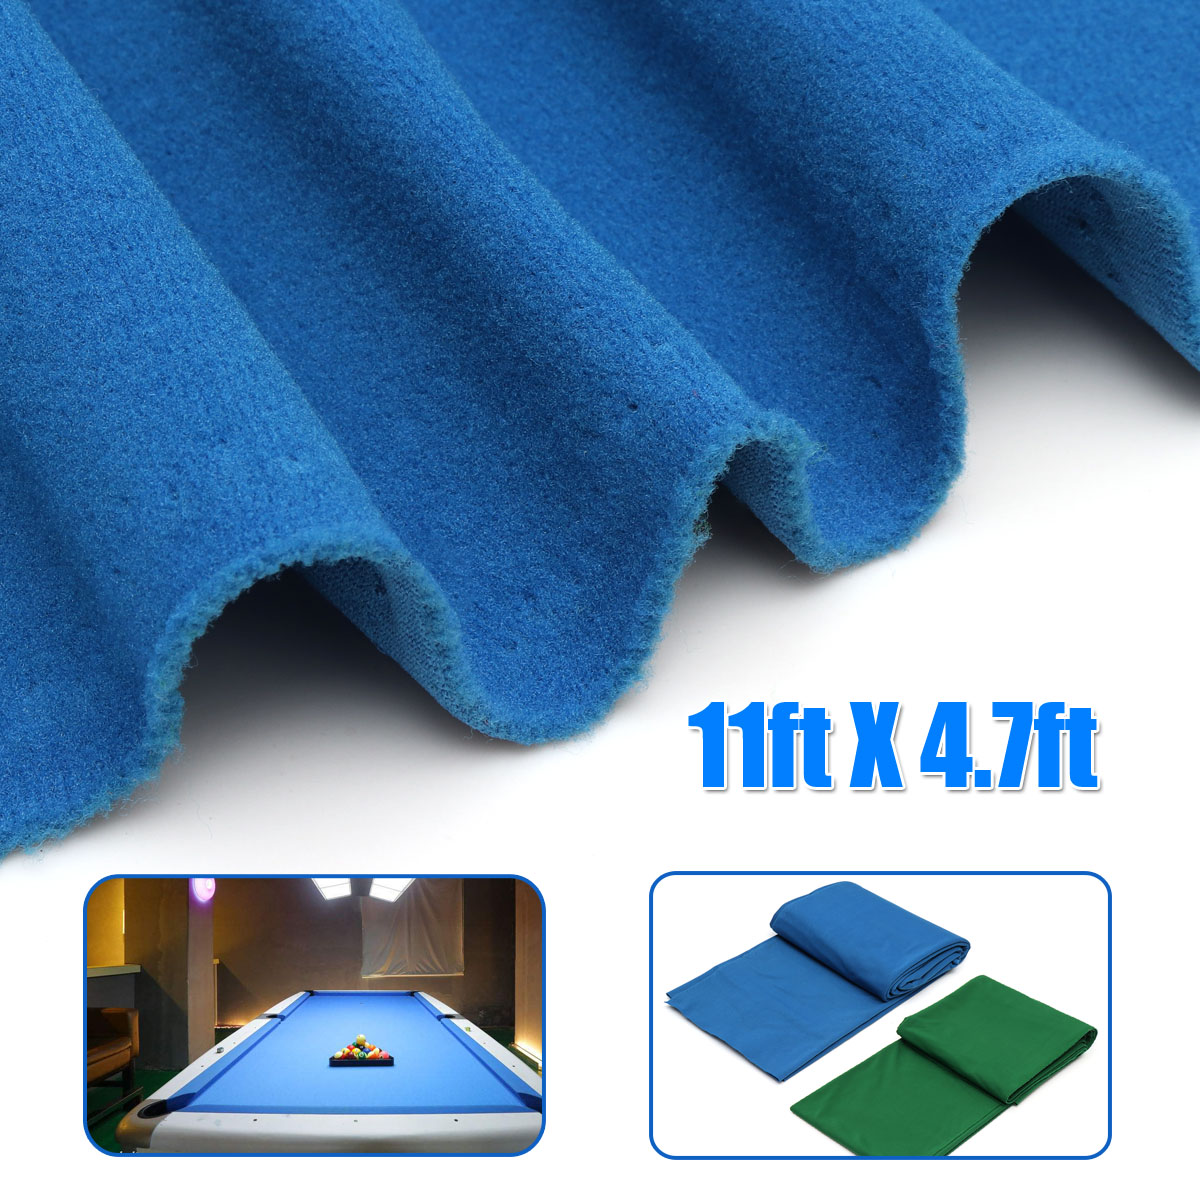 11ftX4.7ft Green/Blue Pool Eight Ball Billiard Pool Table Cloth for American billiards Snooker Accessories 340x145cm